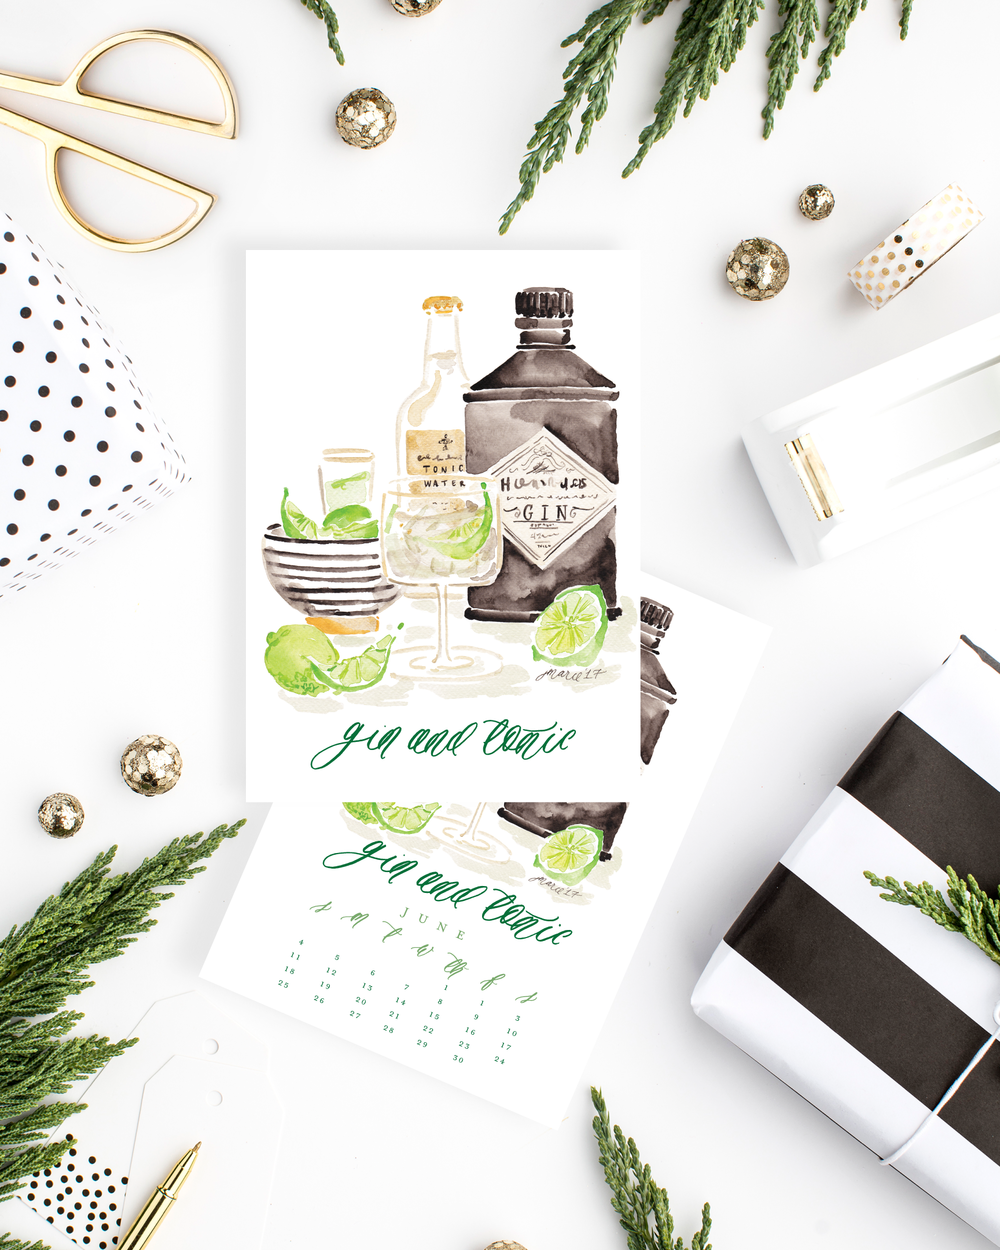 2017 Cocktail Calendar with Watercolor Cocktail Illustrations by Simply Jessica Marie | Top Tips for Using Styled Stock Photos for Shop Owners | SC Stockshop